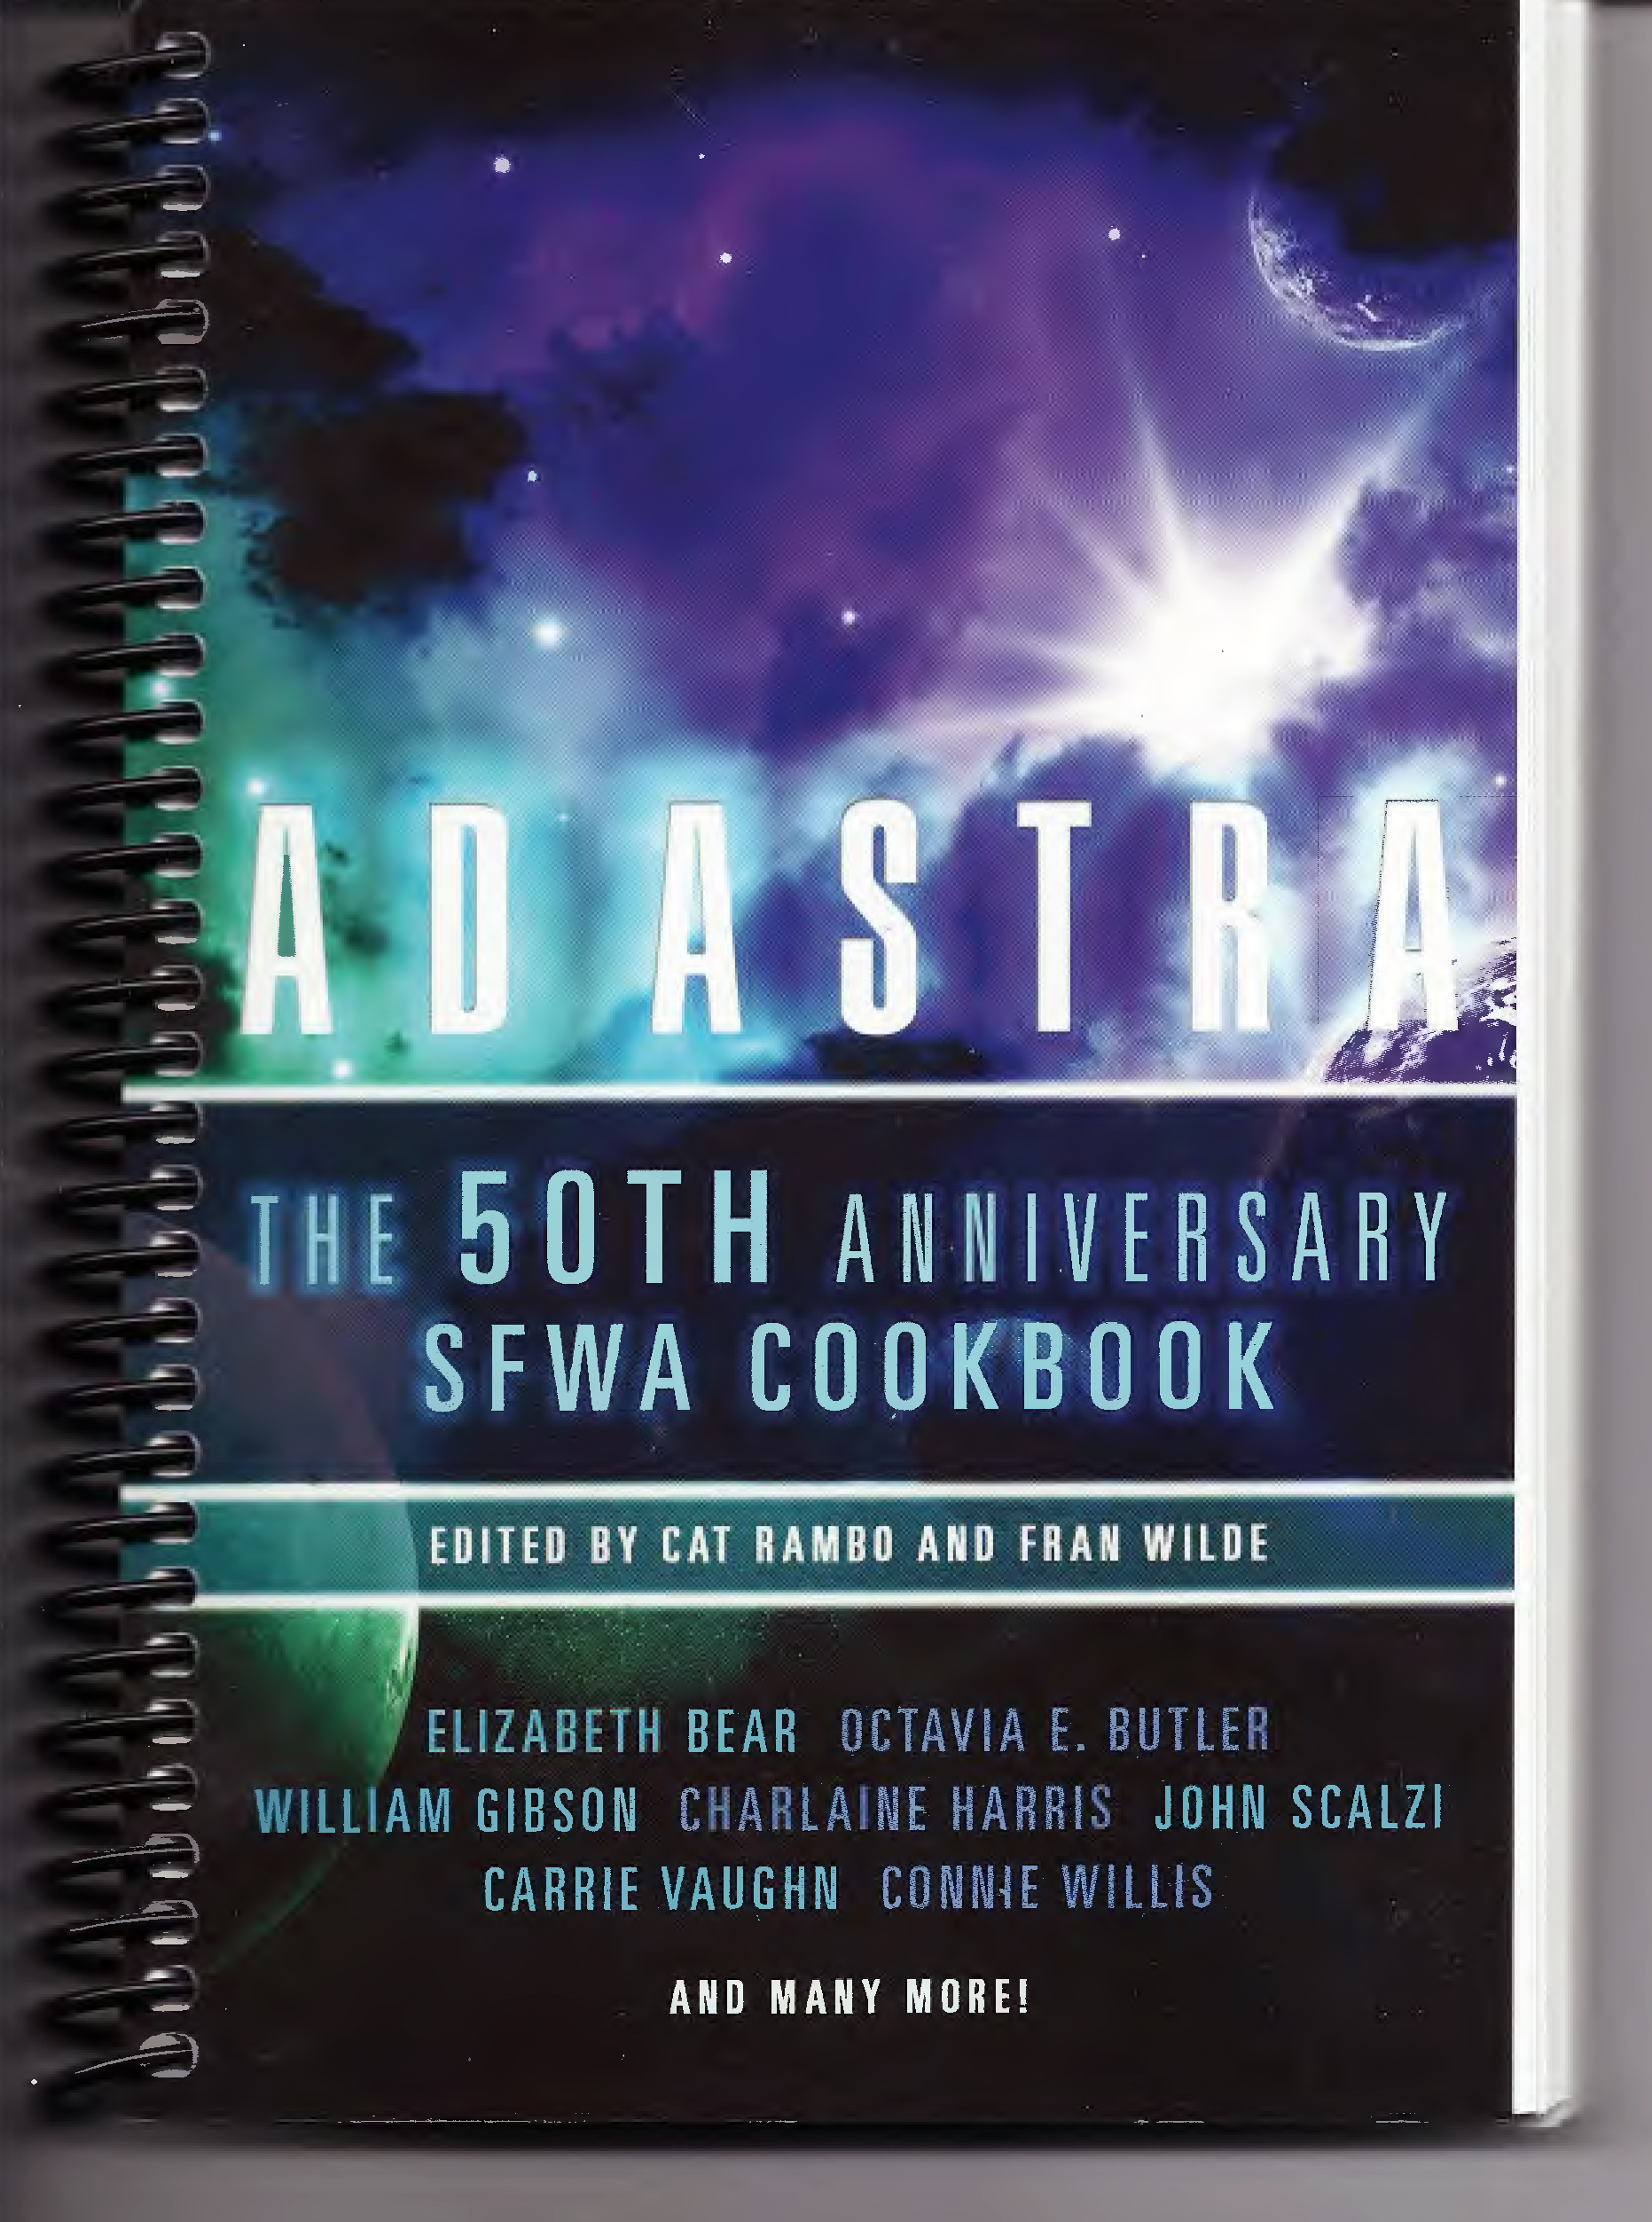 Ad Astra: The 50th Anniversary SFWA Cookbook for Sale!